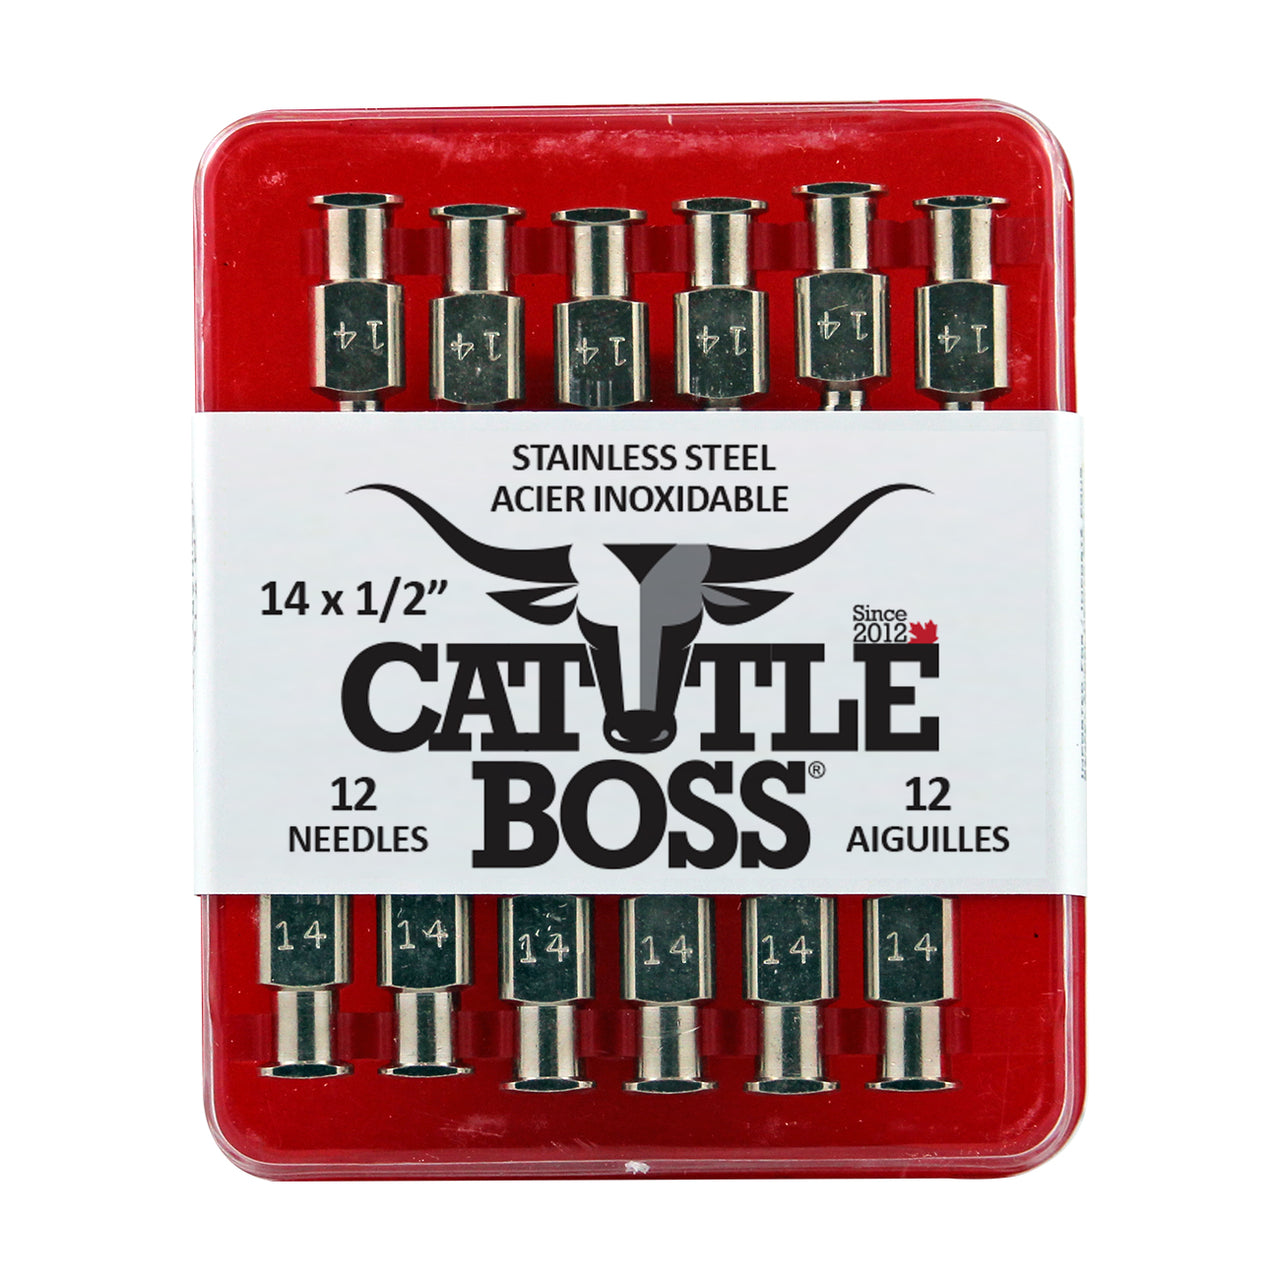 Cattle Boss stainless steel hub needle (12 pack) 14x1/2